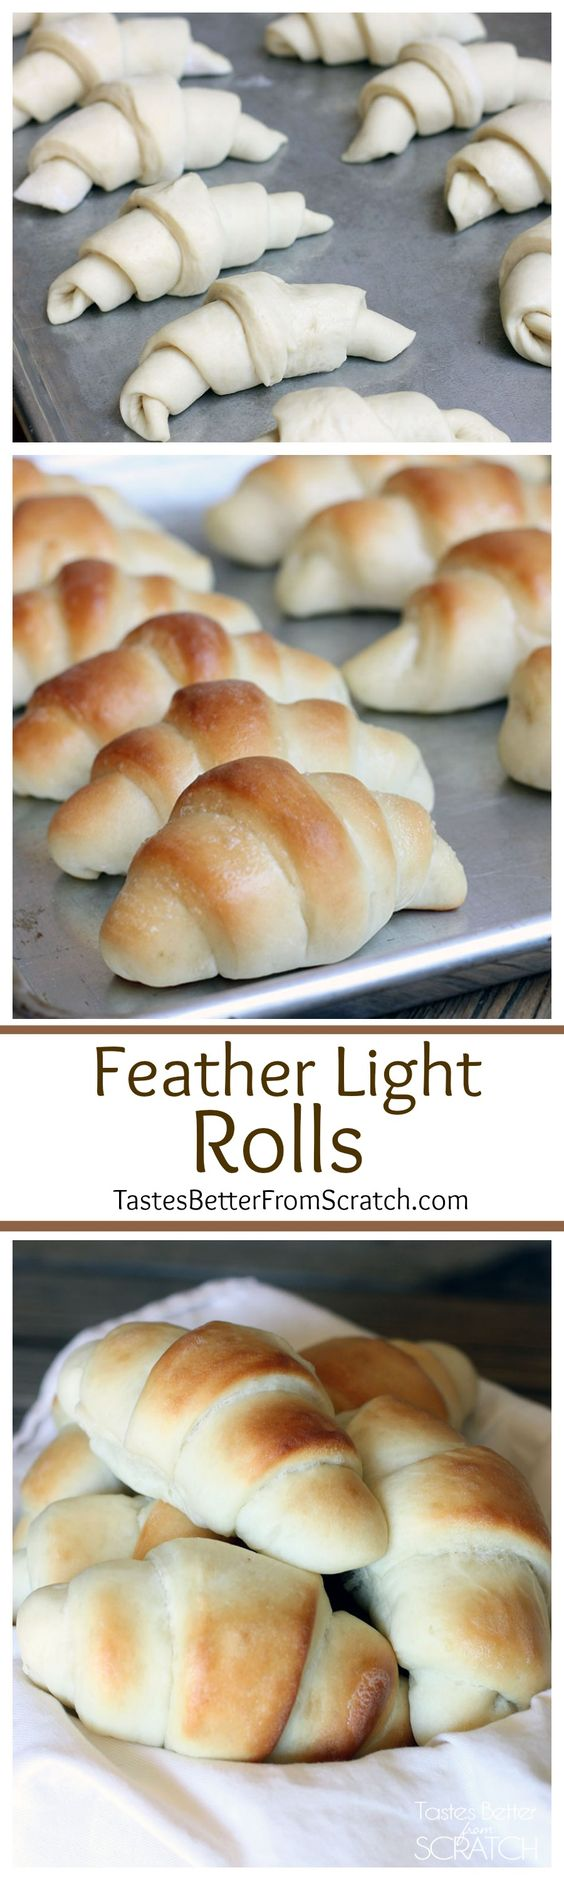 Feather Light Rolls | Recipe | Homemade Rolls, Roll Recipe and ...